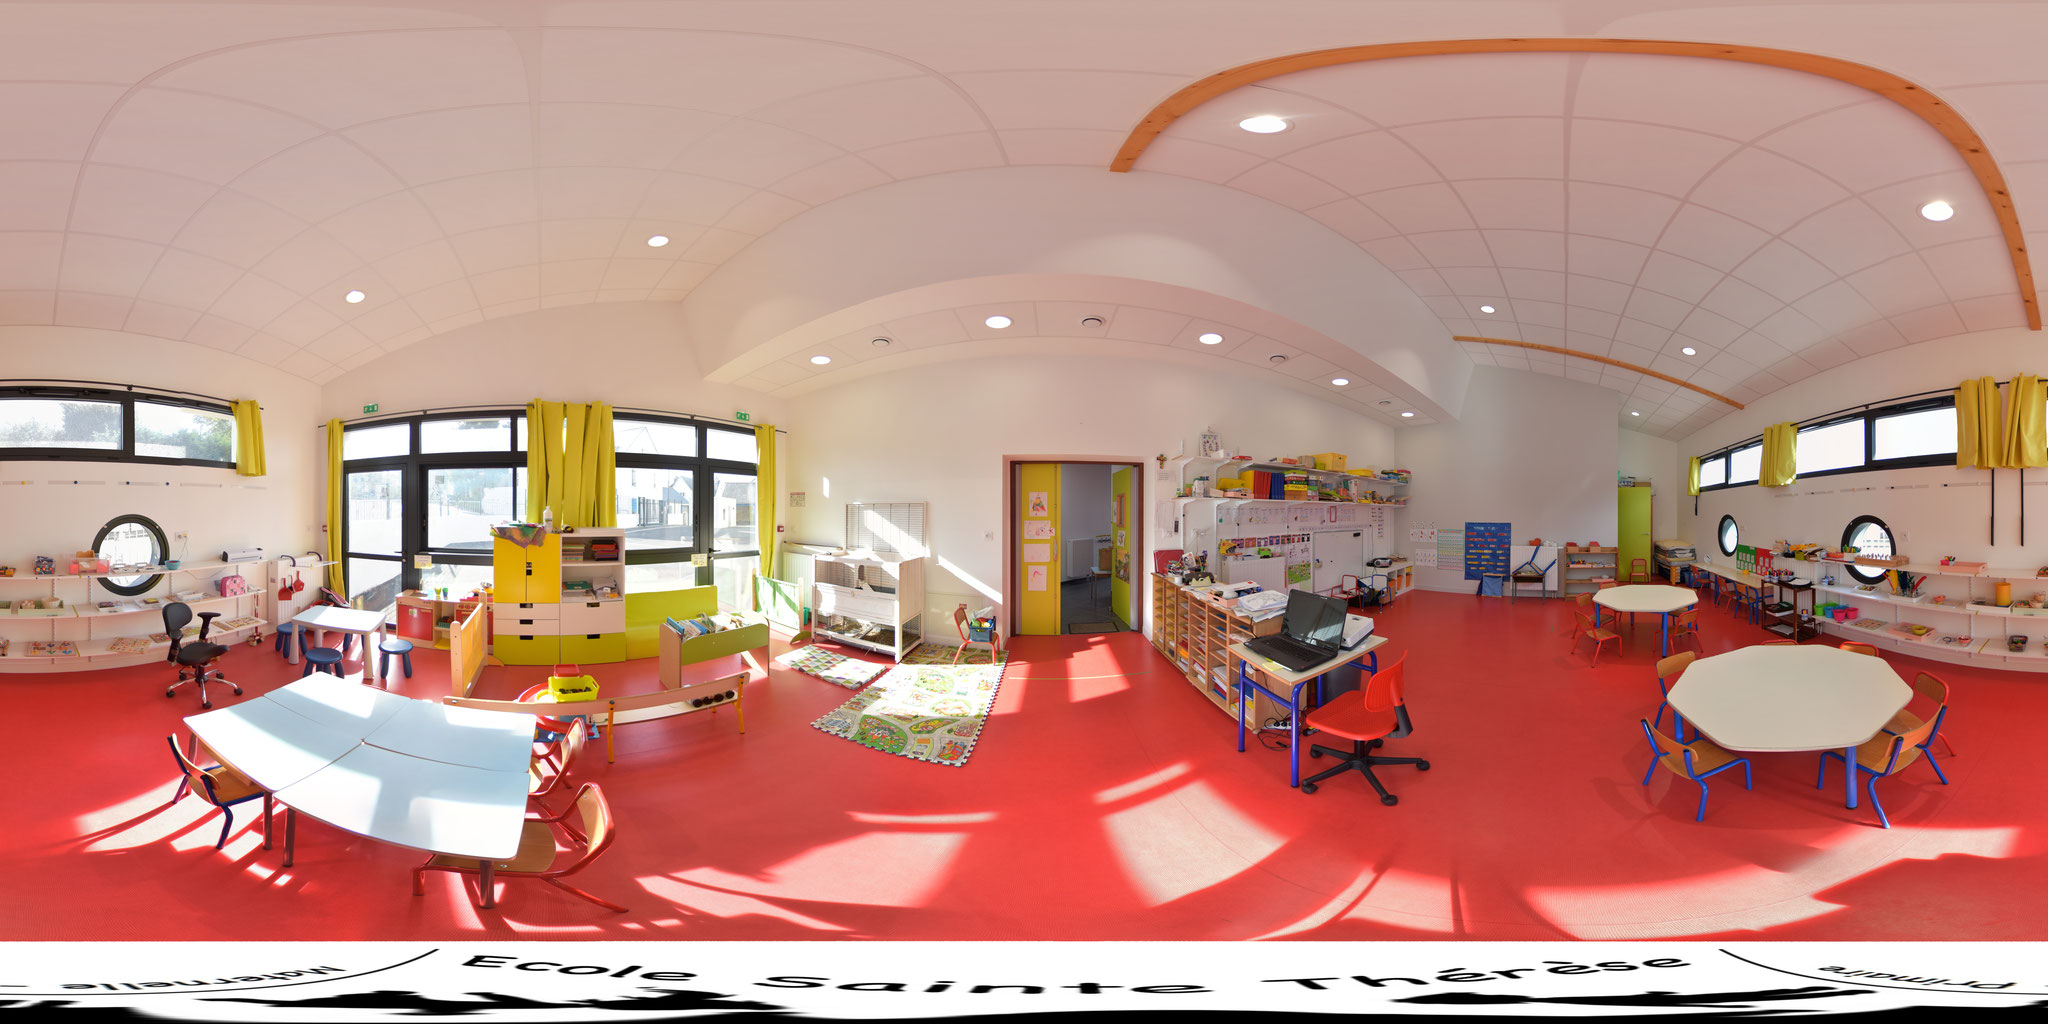 ECOLE MATERNELLE ST THERESE